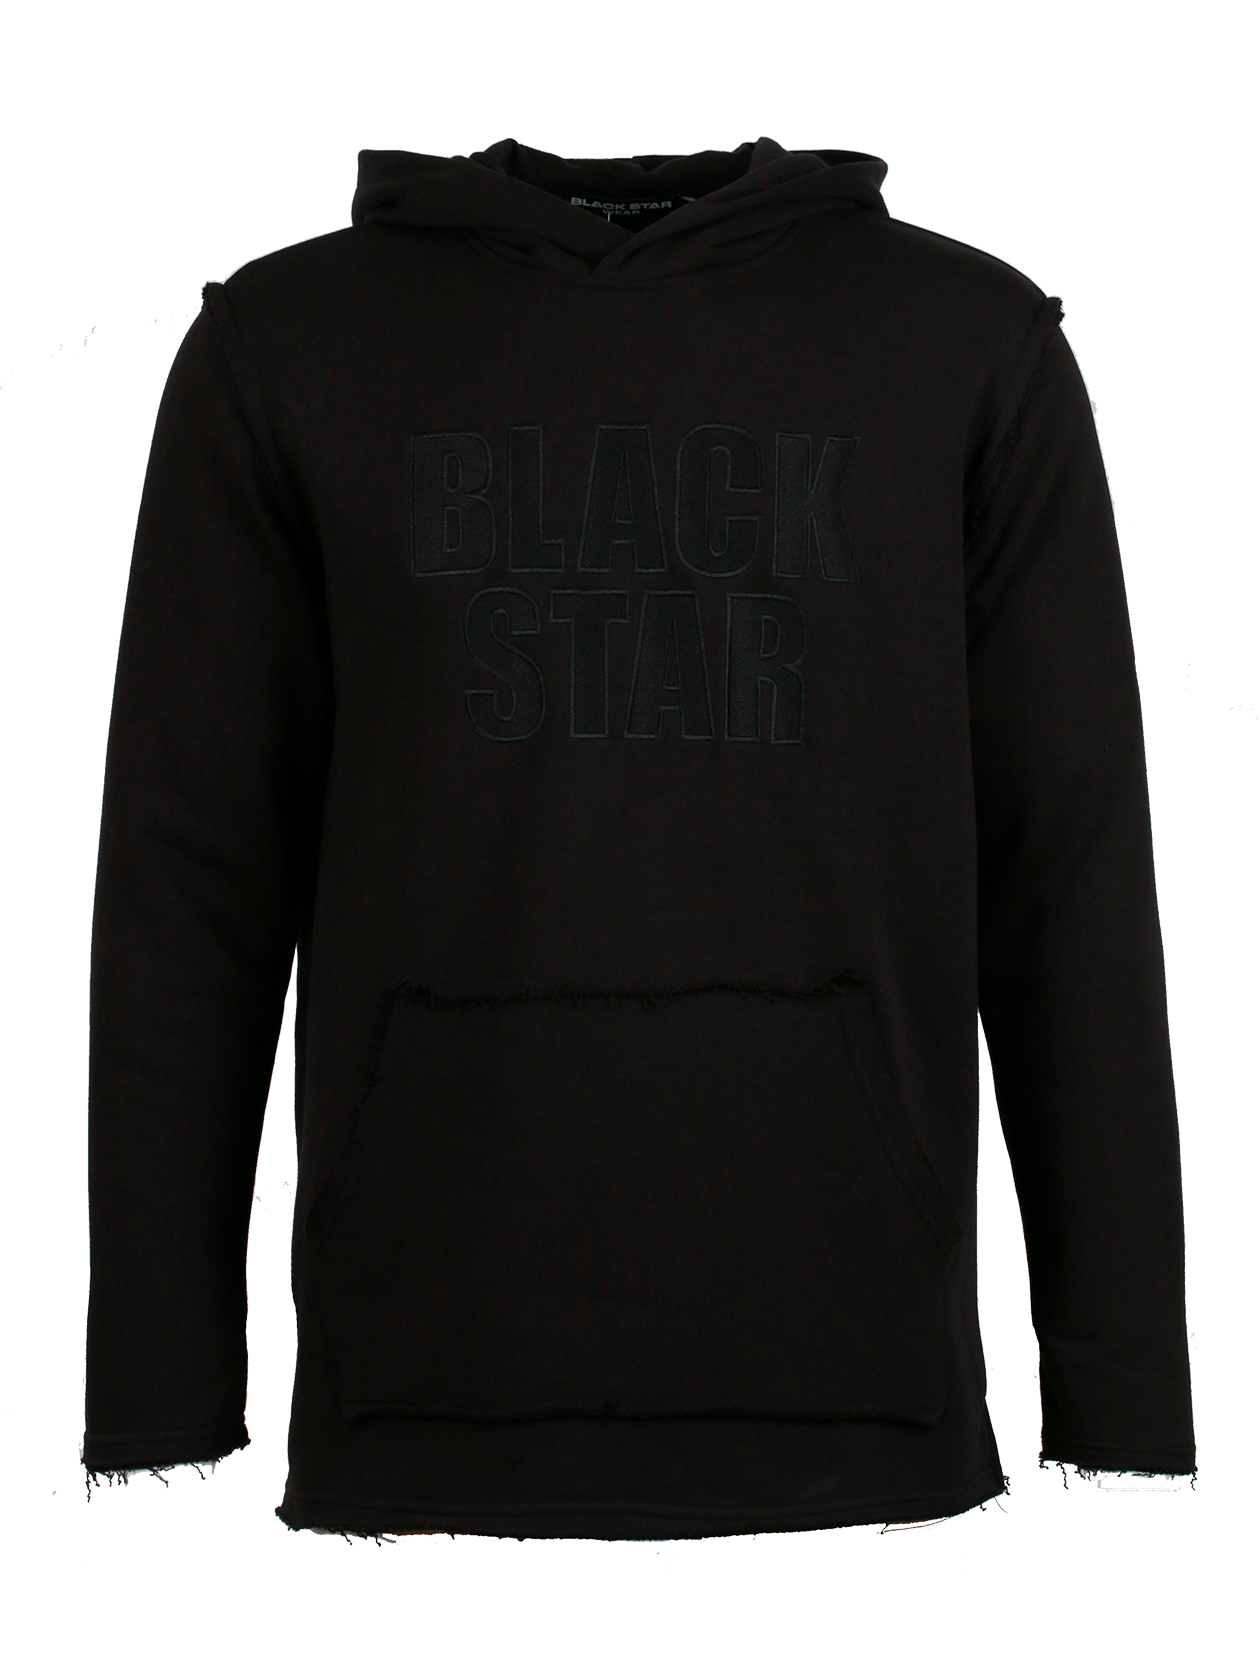 Костюм спортивный унисекс INSIDE OUT от Black Star Wear